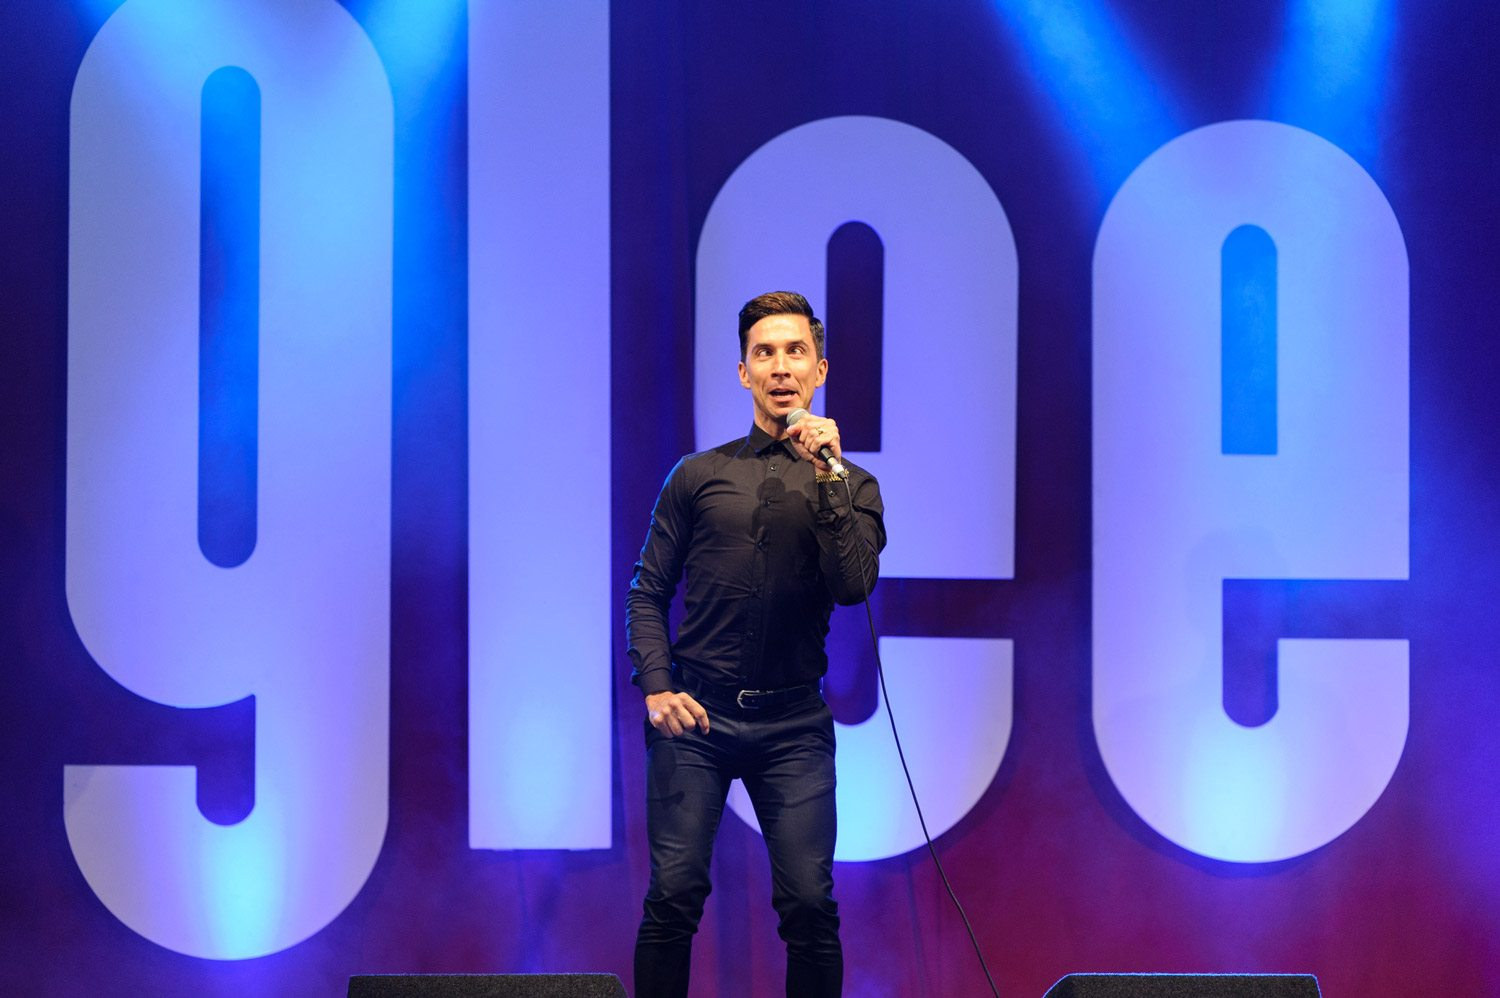 Russell Kane on stage at The Glee